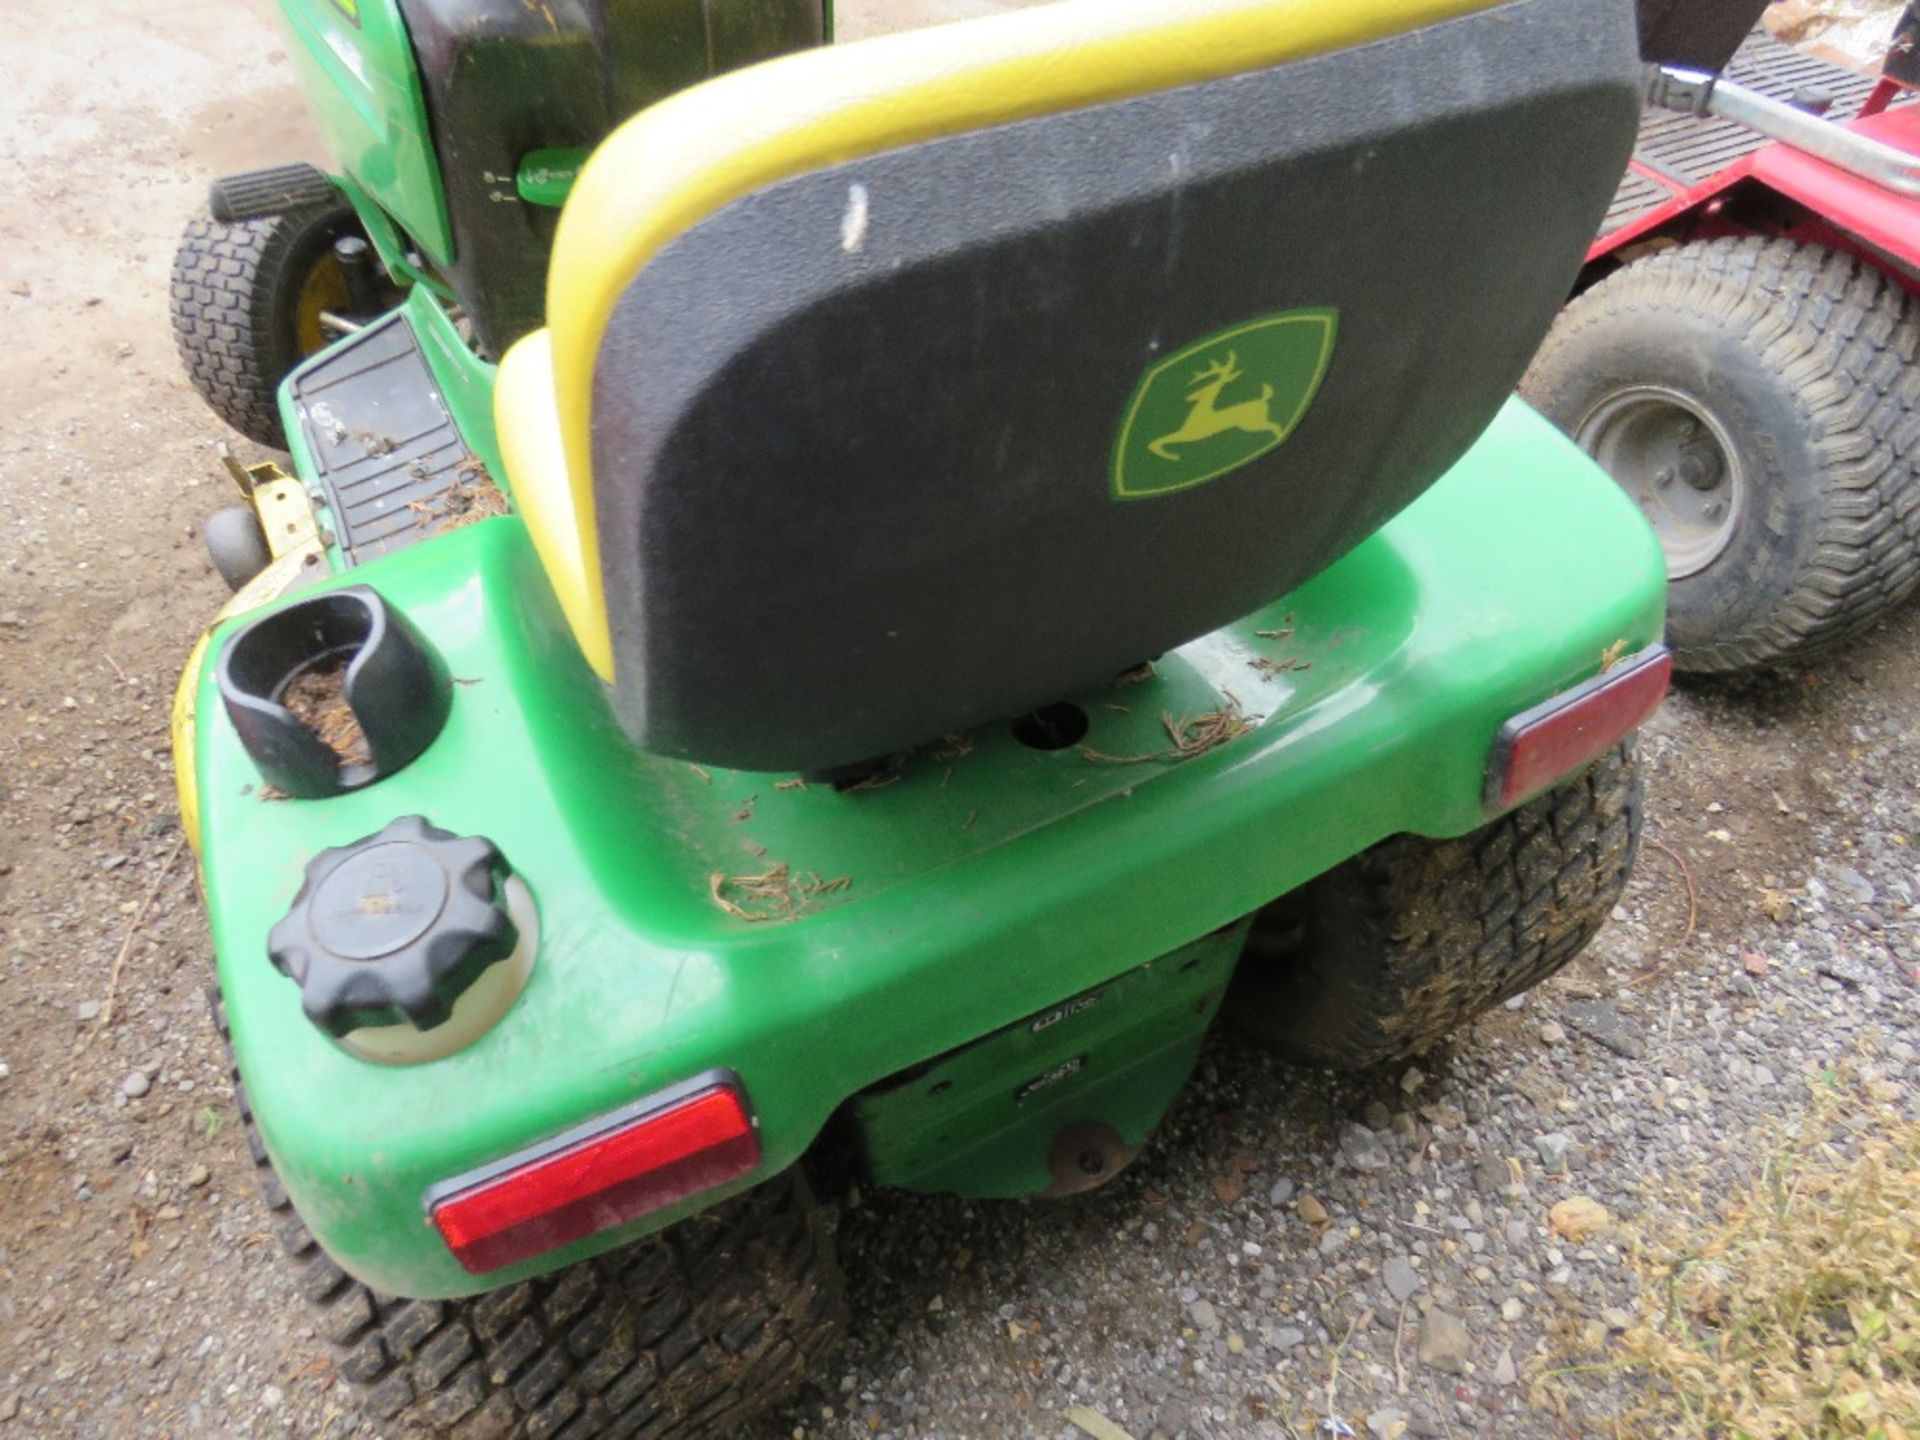 Lot 16 - JOHN DEERE GT235 RIDE ON MOWER YR2003 when tested was seen to start, run and drive